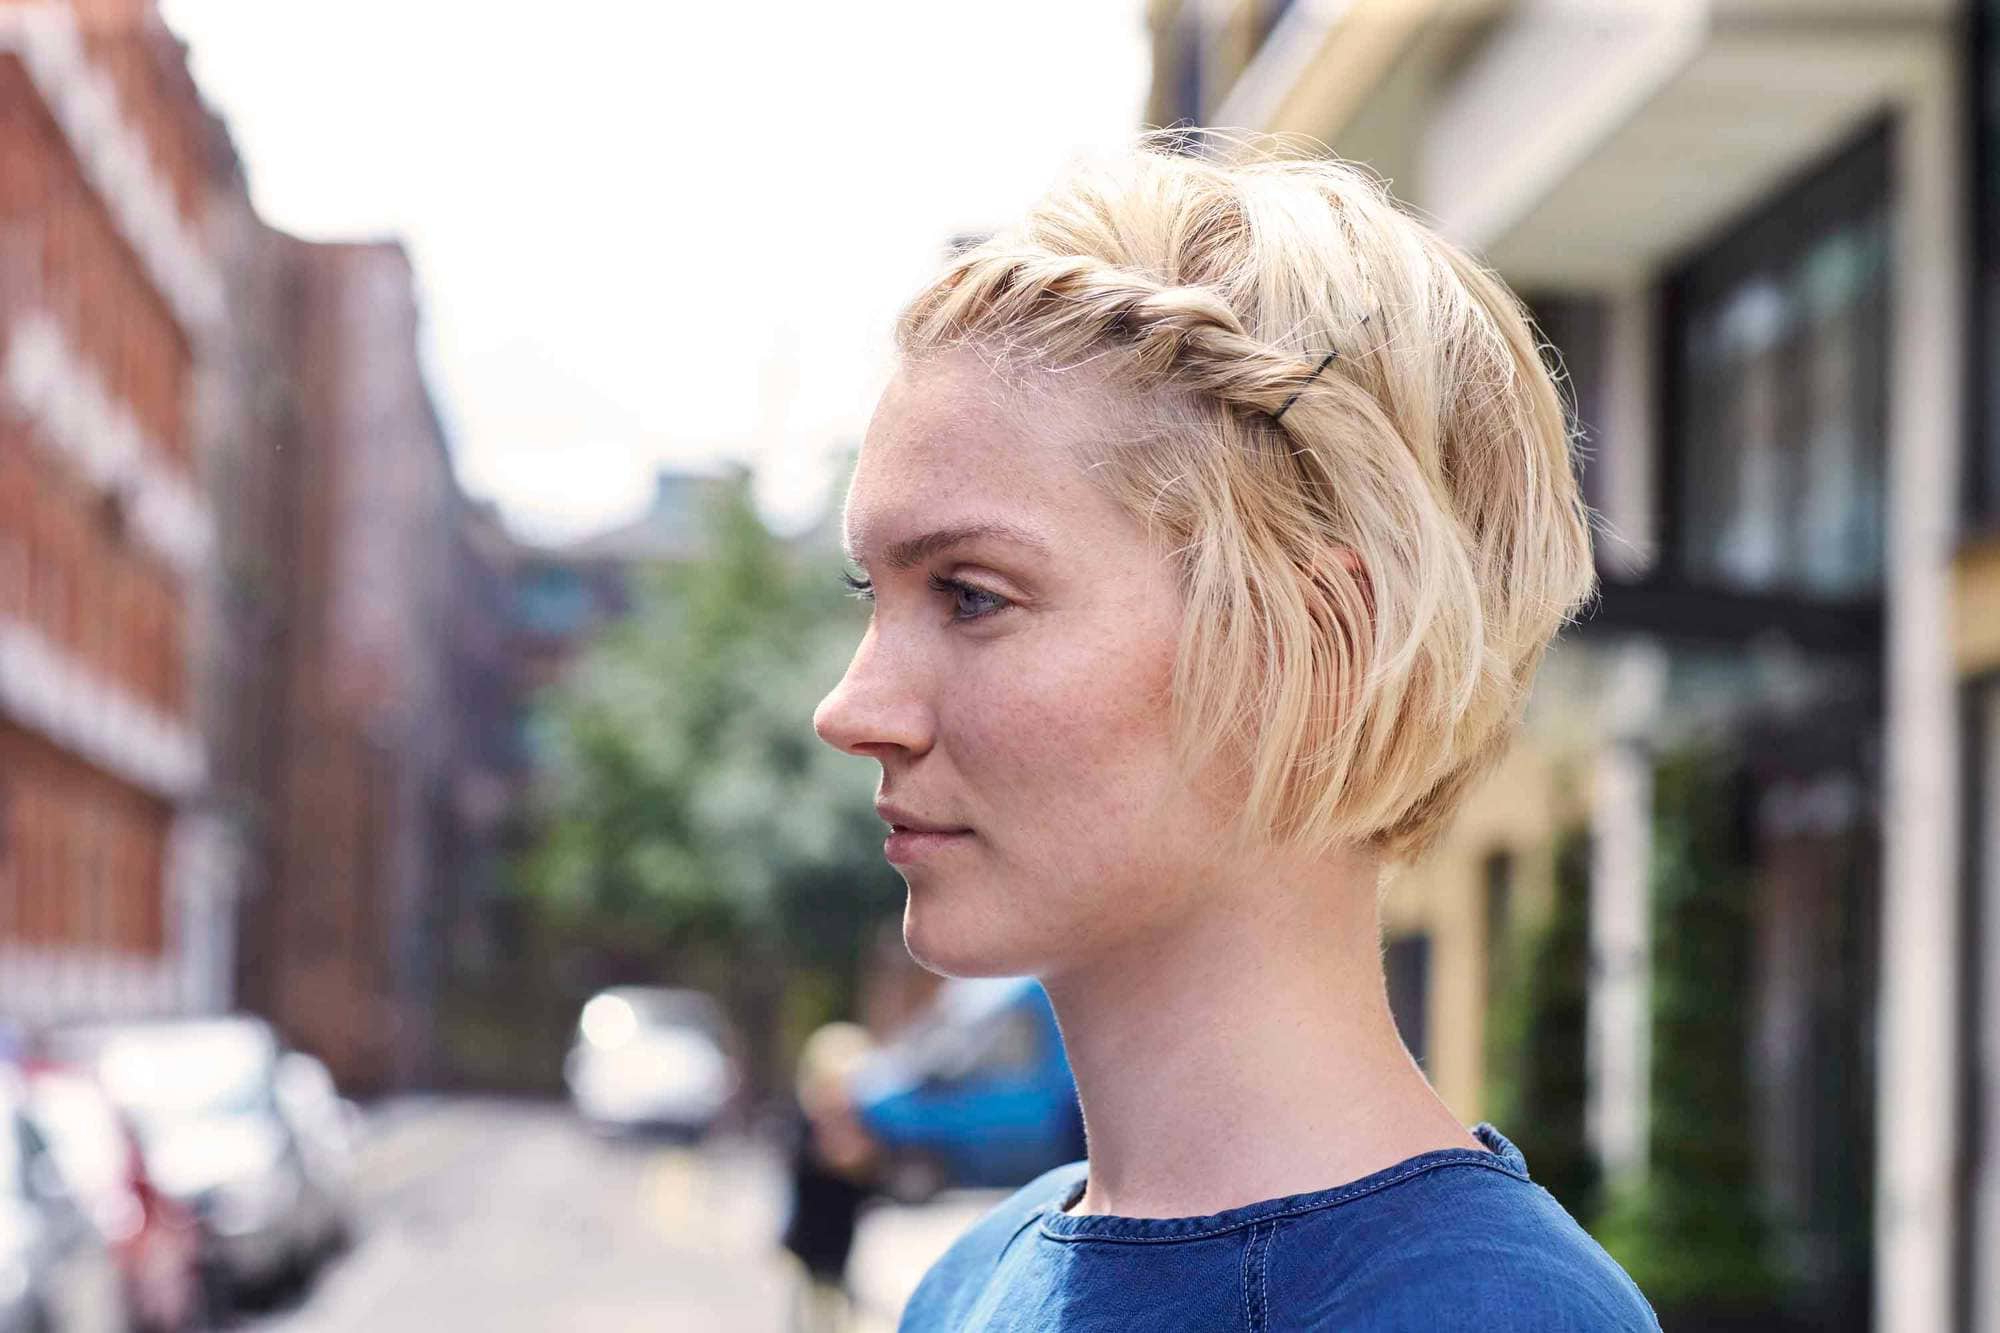 4 Sporty Hairstyles For Short Hair To Rock When You Break A Sweat Regarding Sporty Short Haircuts (View 10 of 25)